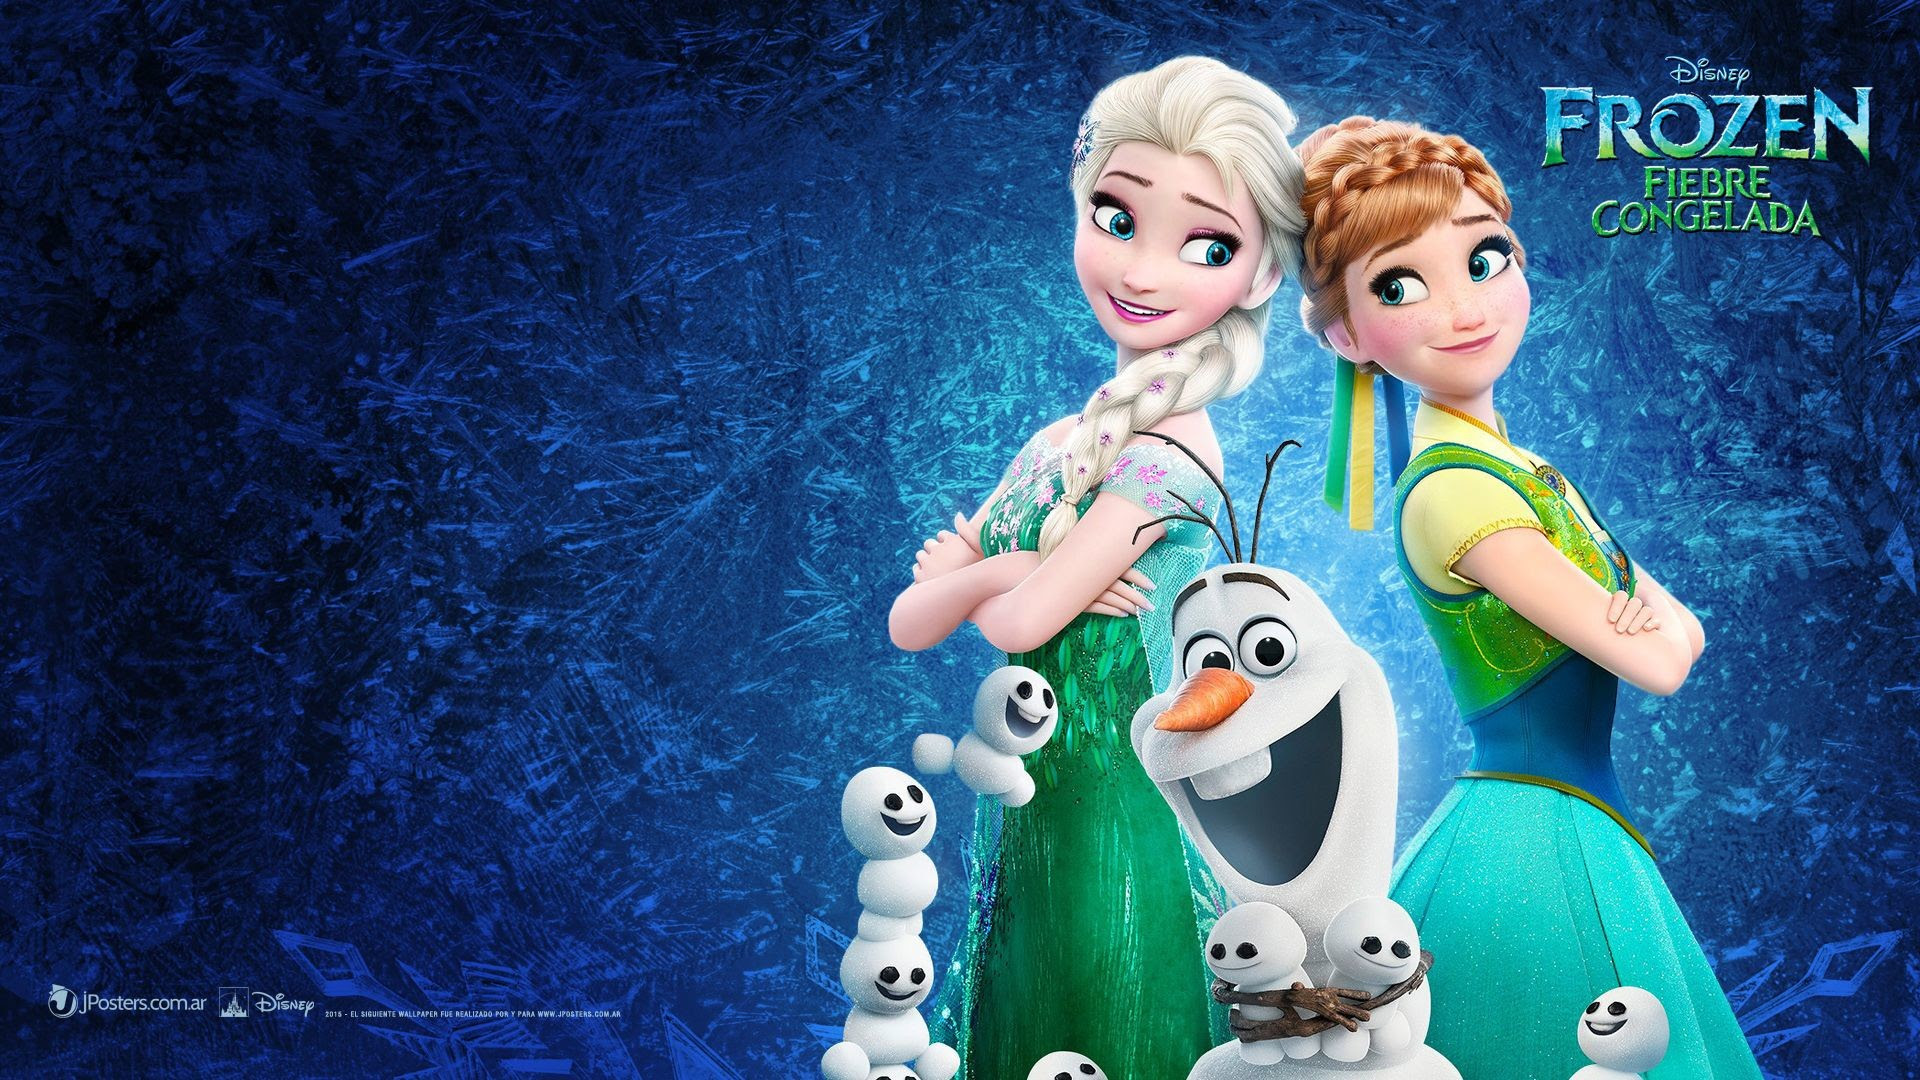 Frozen Fever Elsa Wallpaper 74 Images